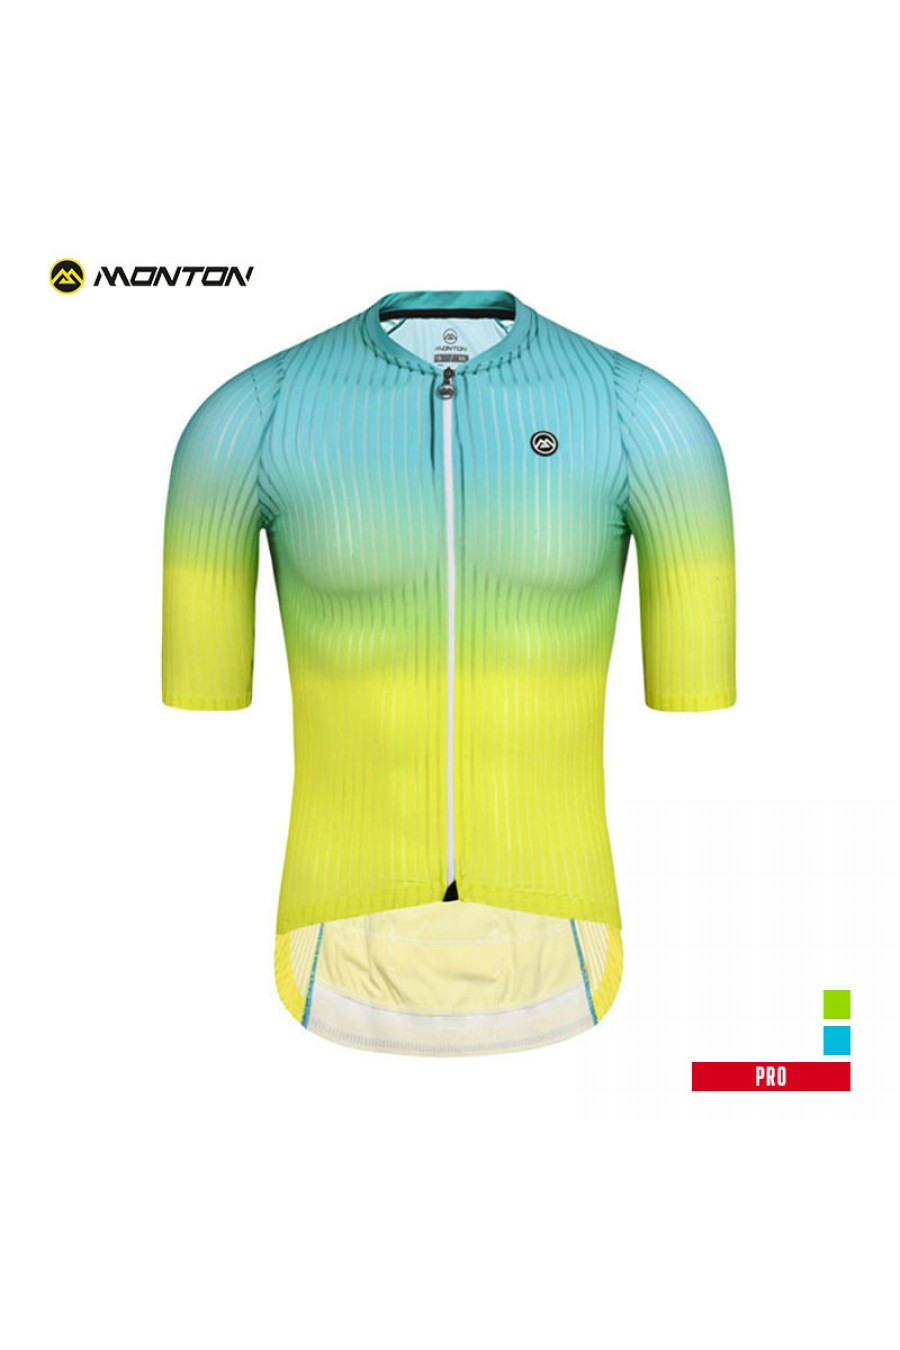 New Cycling Bicycle Bick Clothing Jersey Shirts Short Sleeve Clothes Light Green